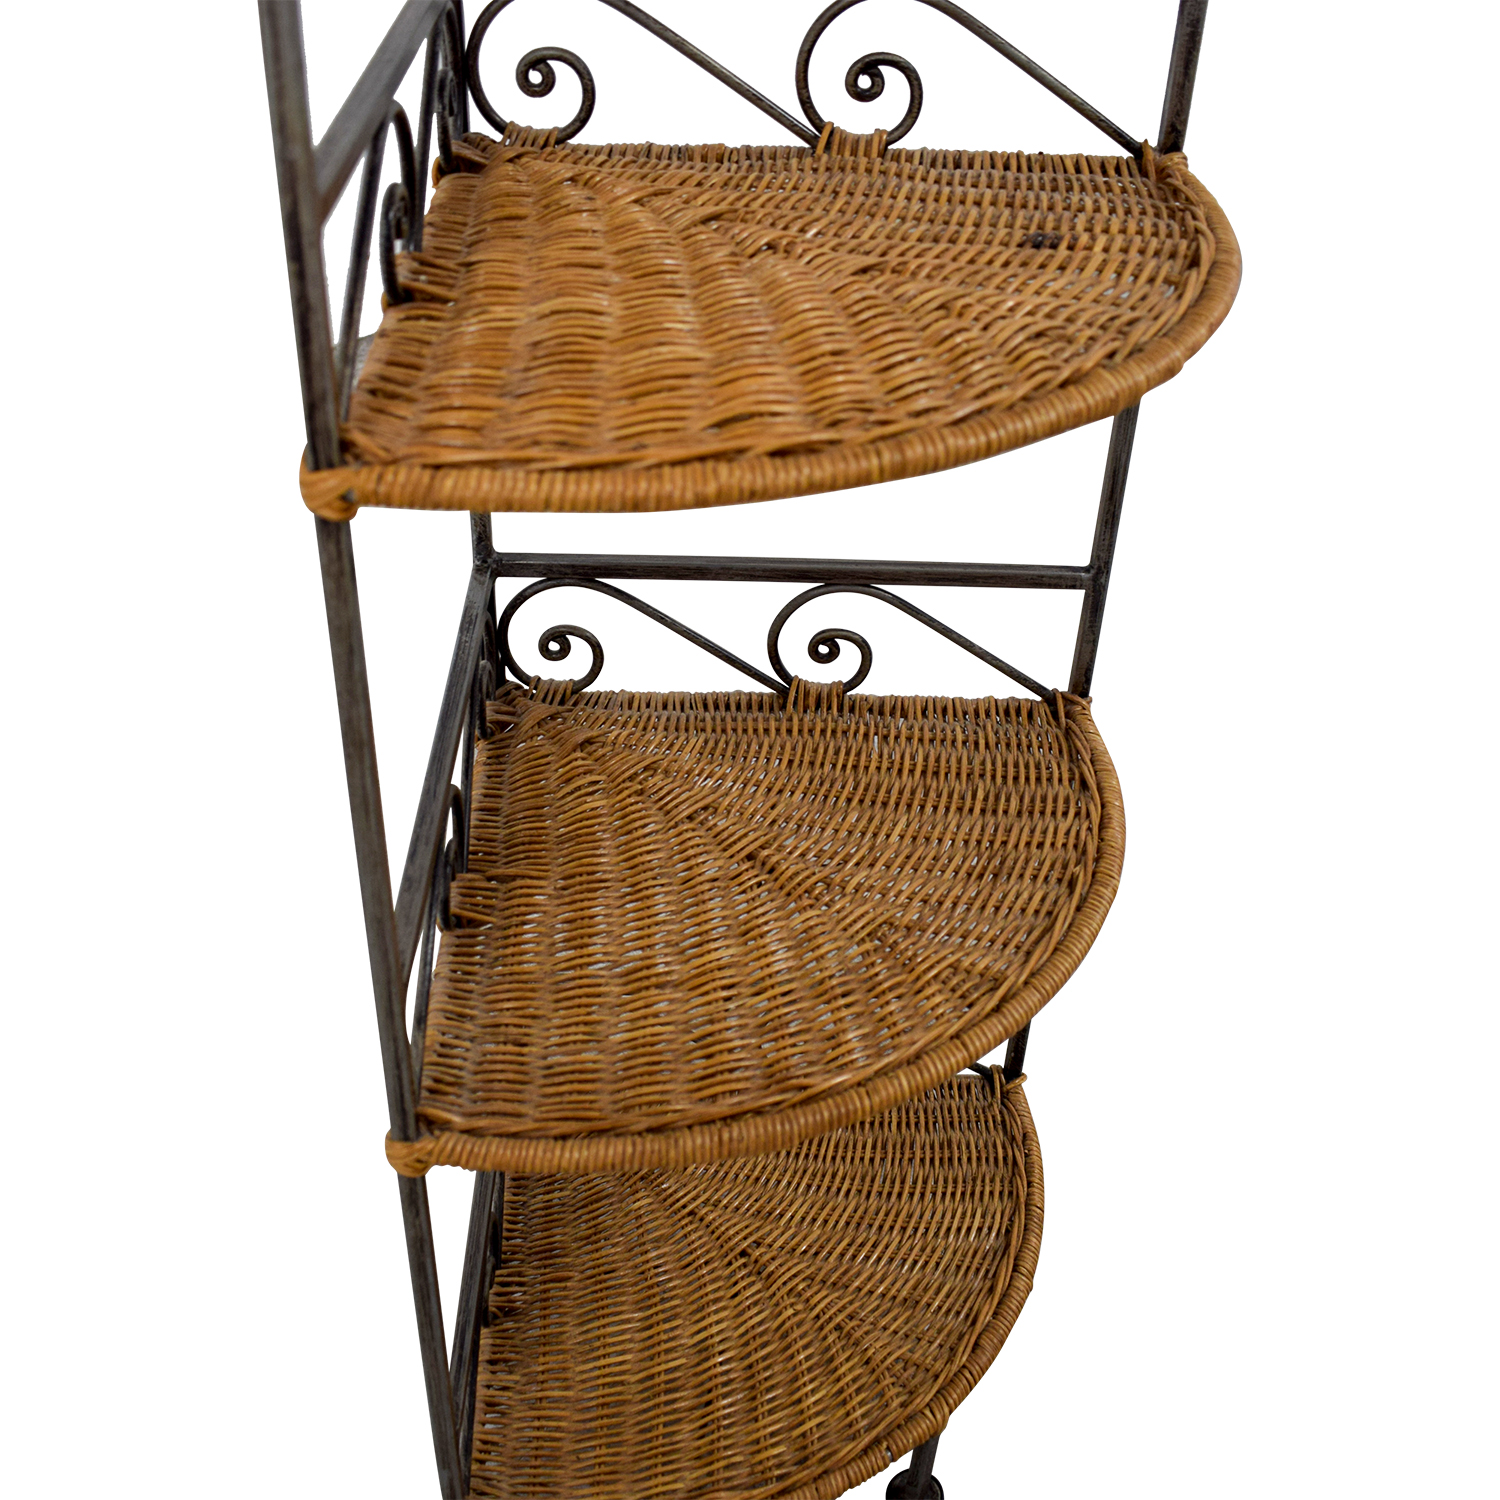 buy Pier 1 Imports Metal and Wicker Corner Shelves Pier 1 Imports Bookcases & Shelving